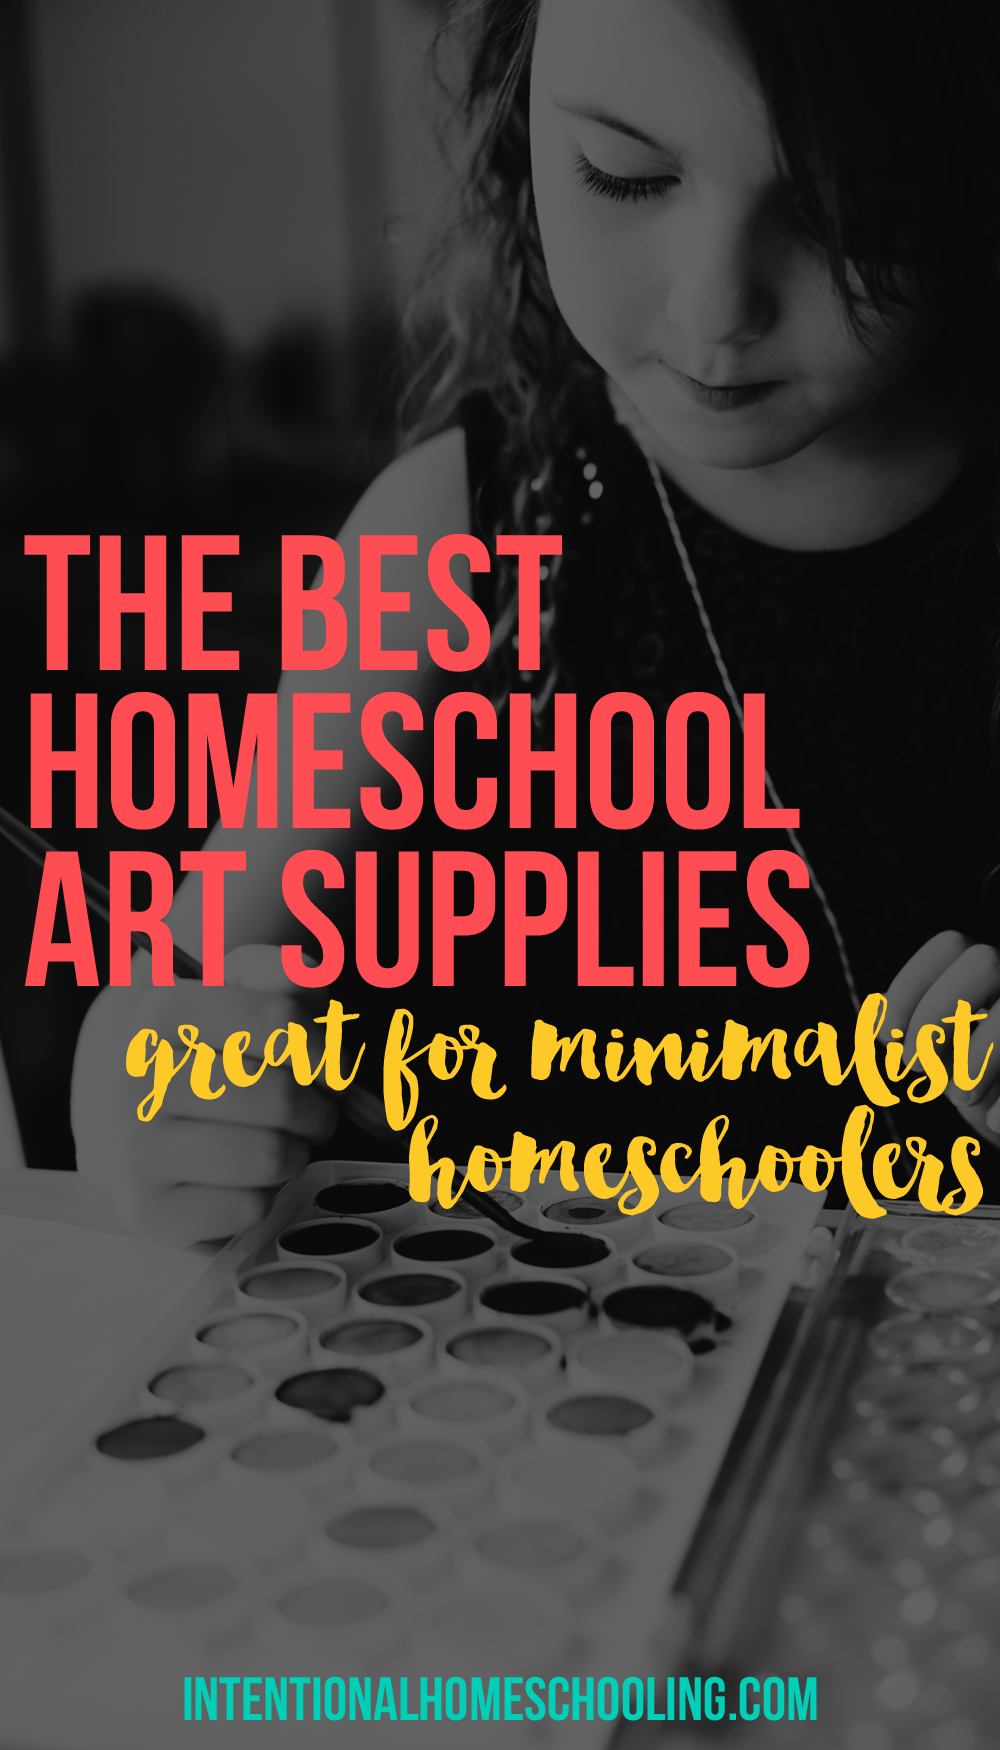 The Seven Best Homeschool Art Supplies - great for minimalist homeschooling